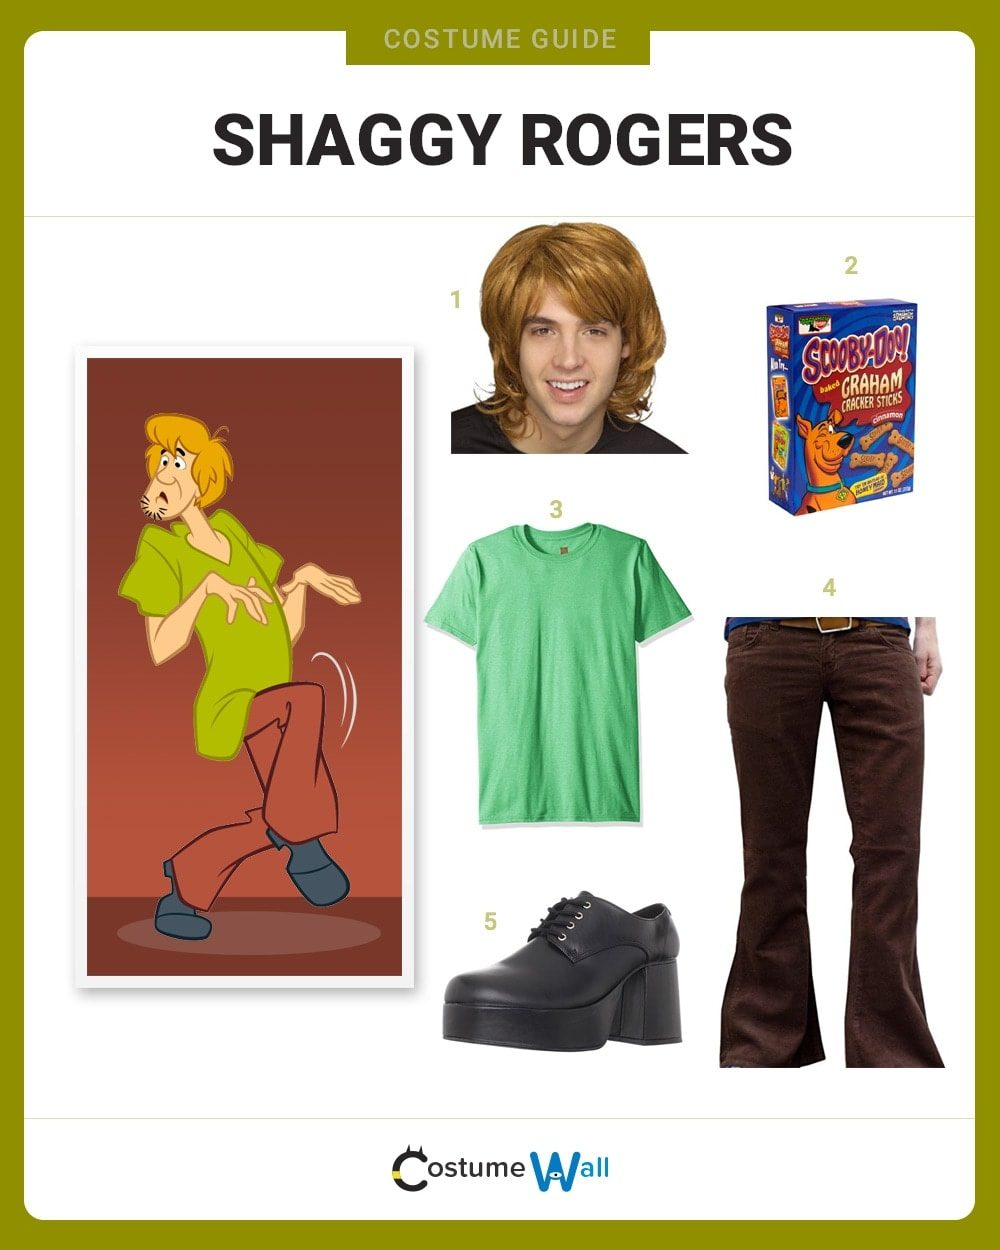 Shaggy Rogers Costume Guide